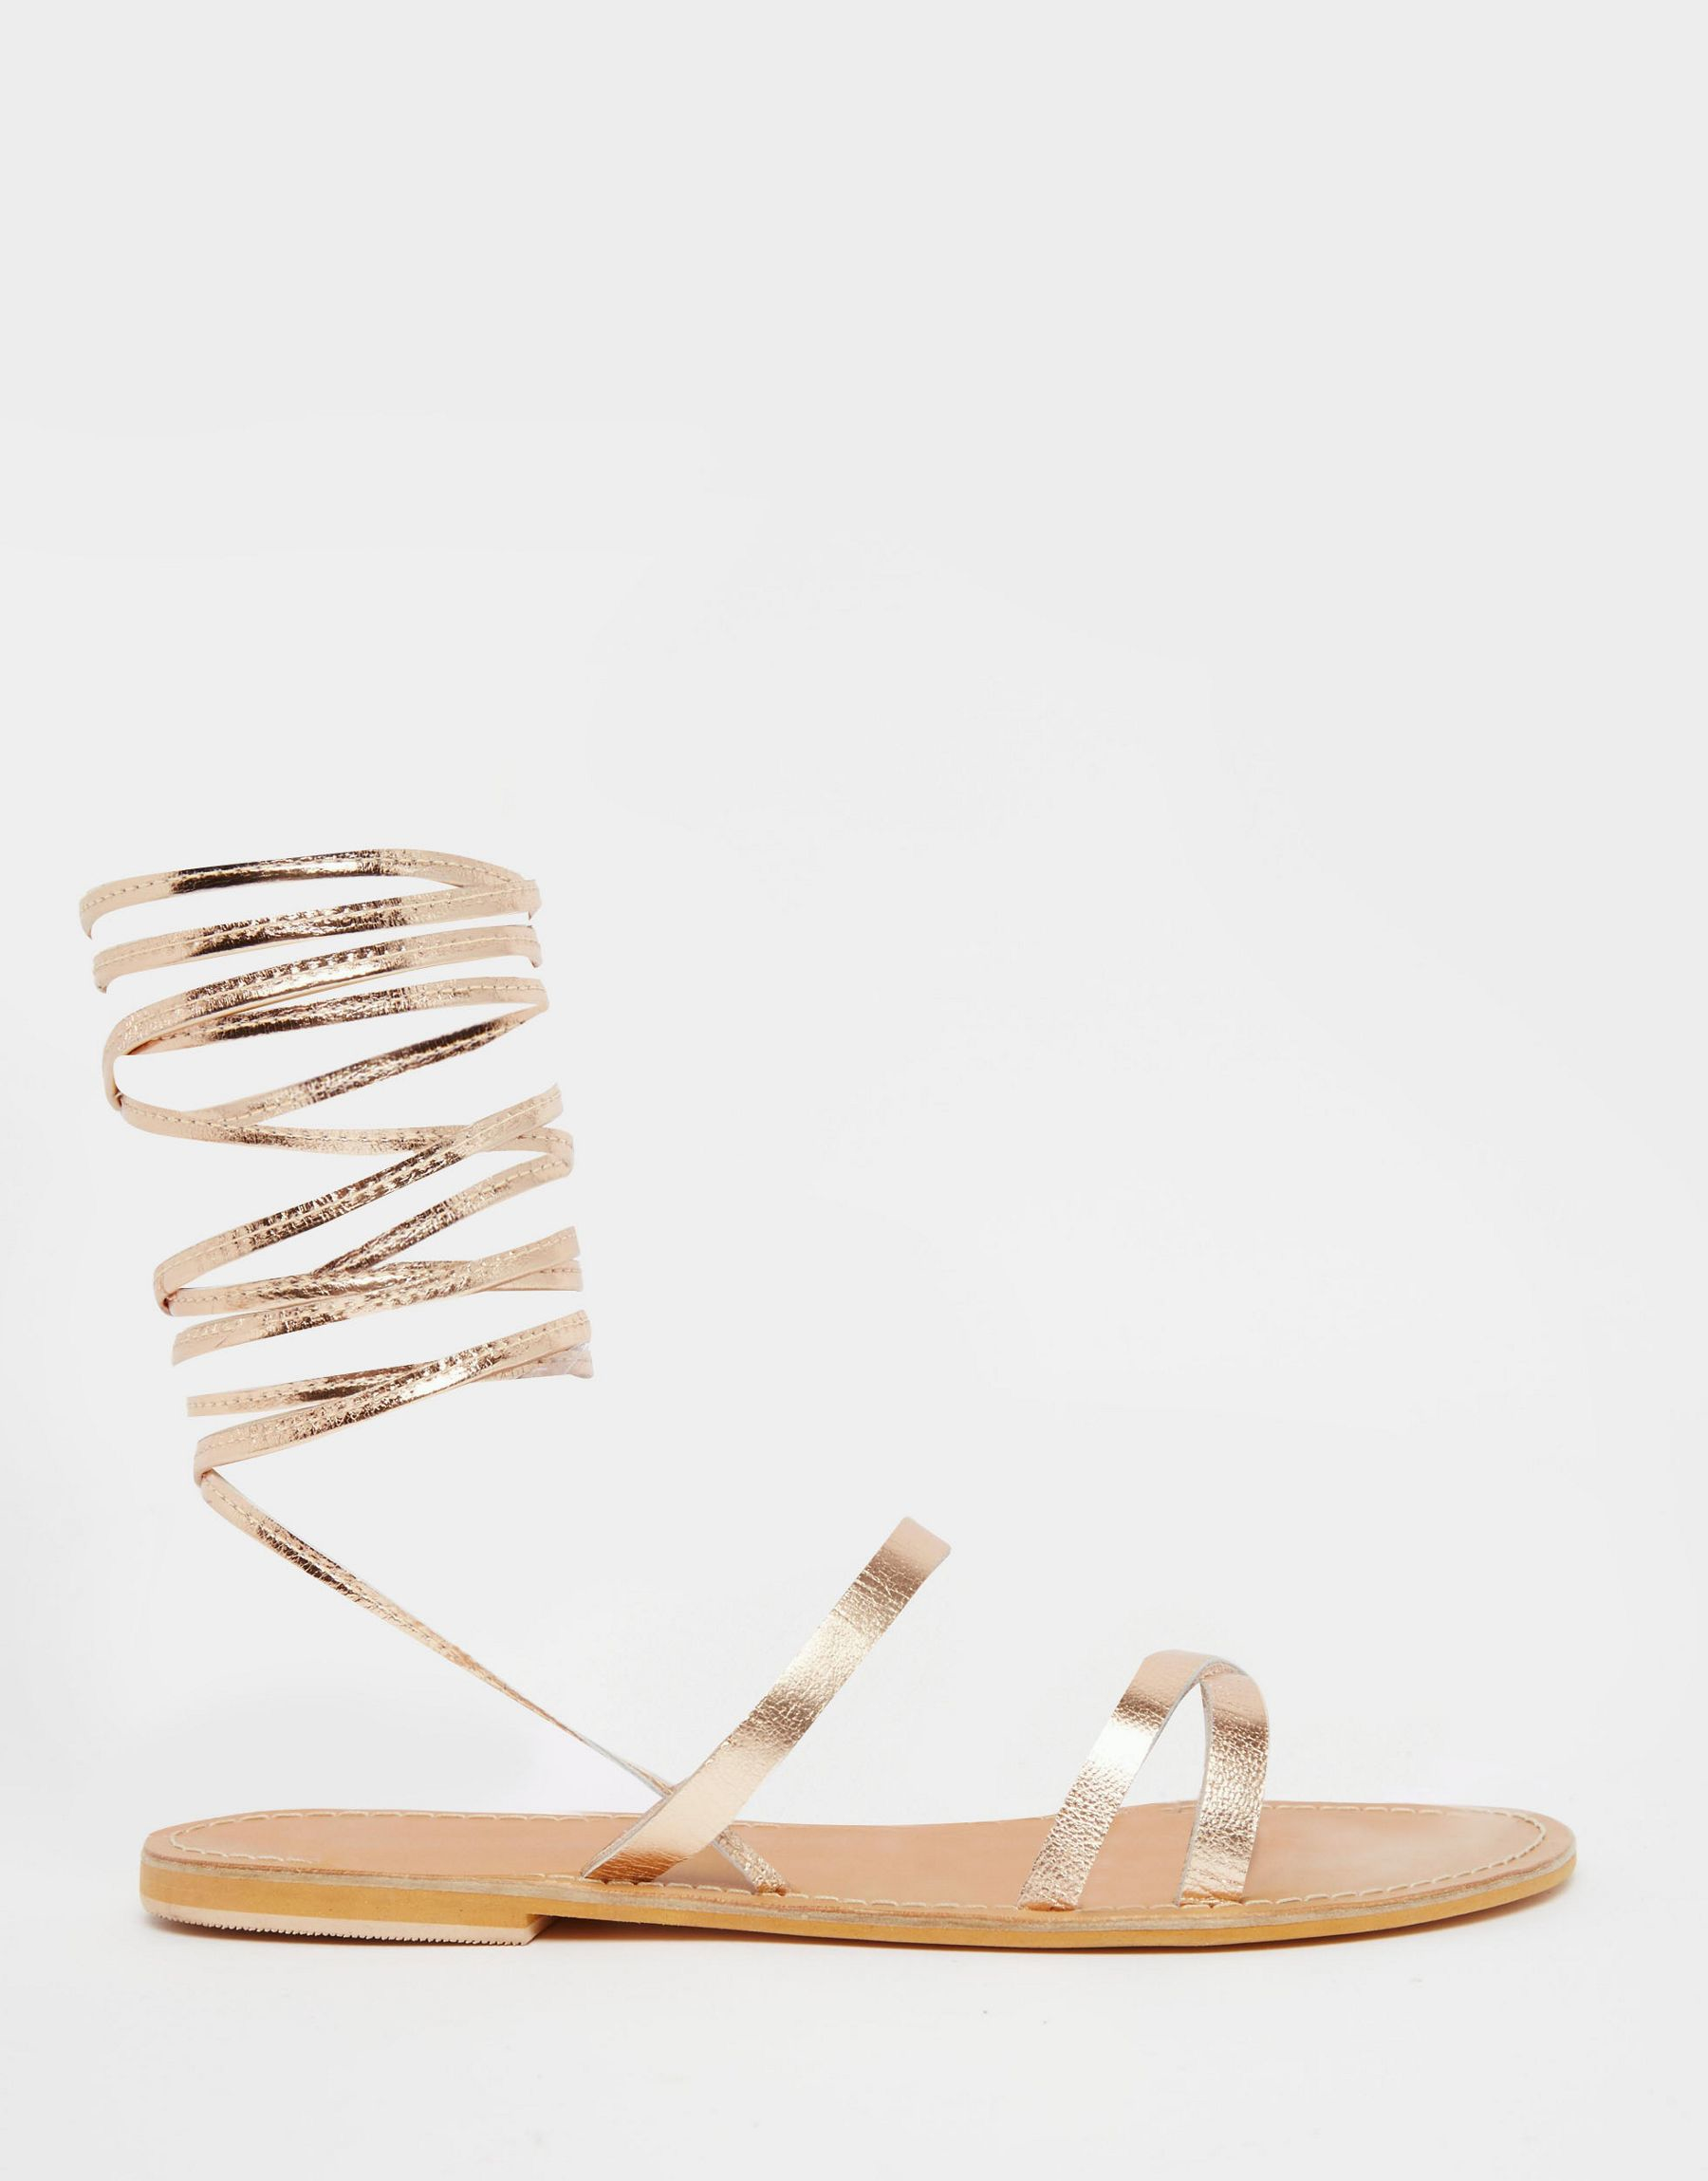 07dd4a149627 Lyst - Asos Finder s Keepers Wide Fit Leather Lace Up Sandals in ...